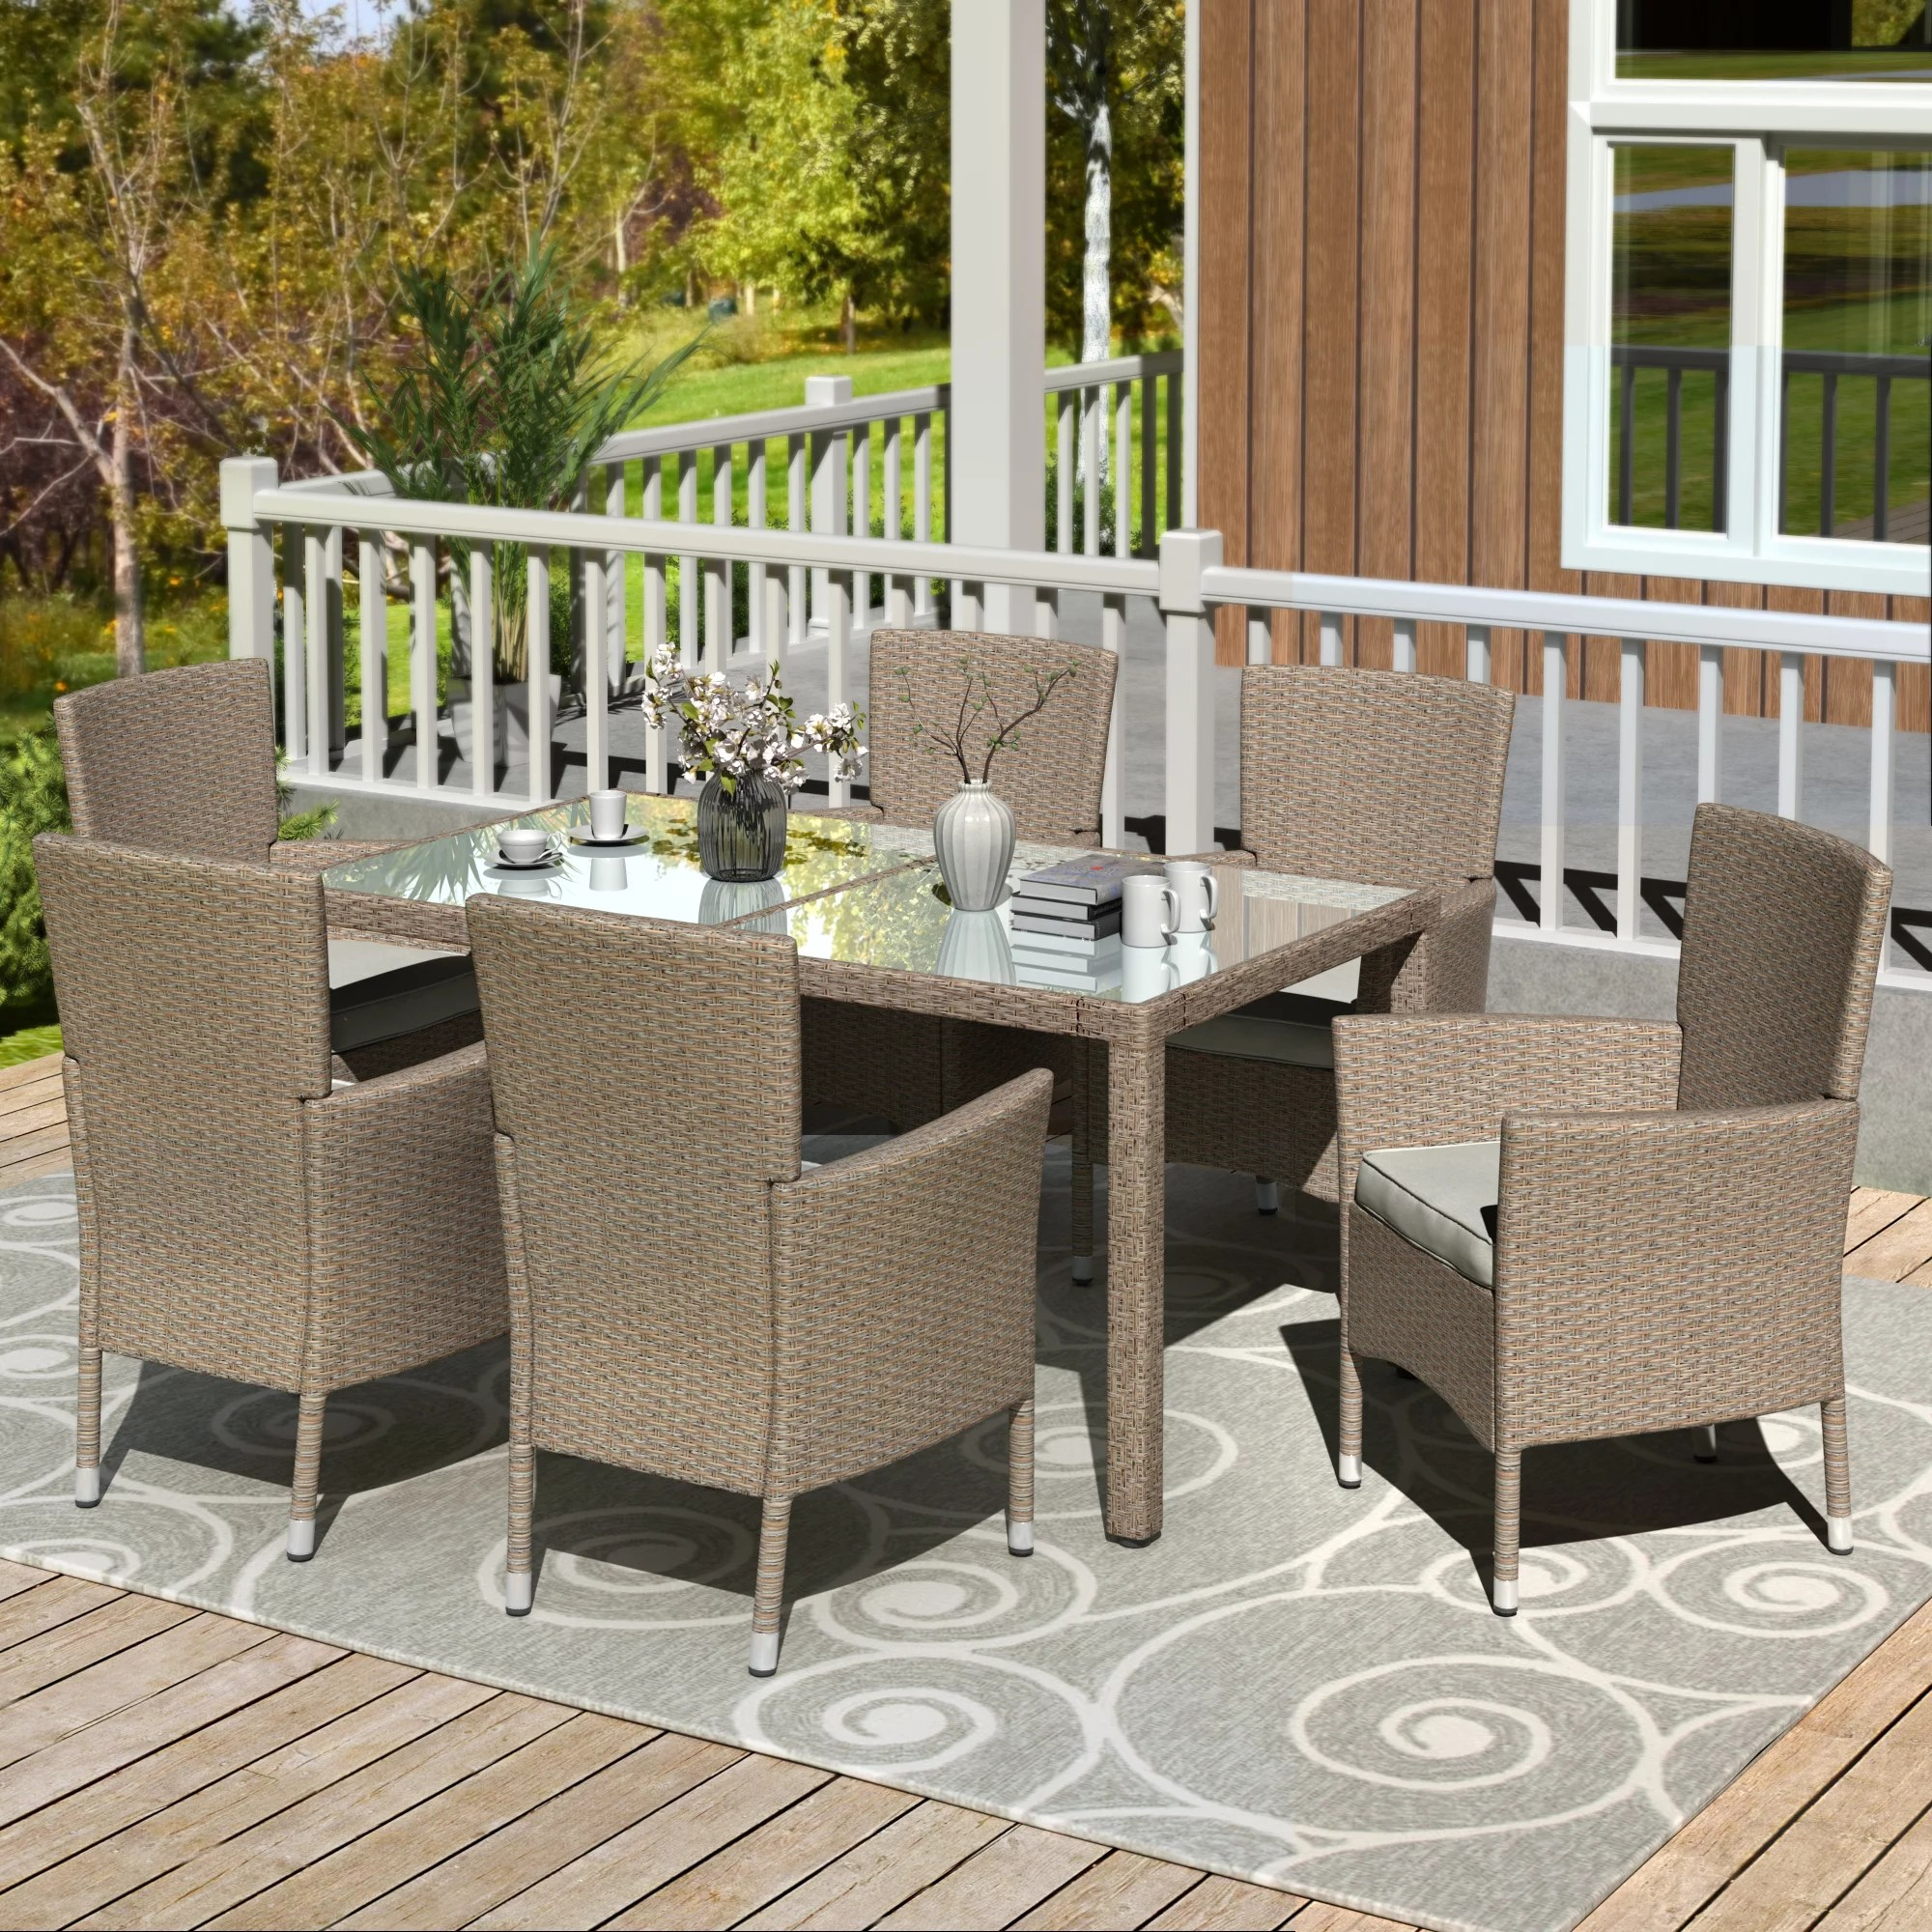 outdoor dining table and chairs set 7 pcs heavy duty wicker patio dining set patio furniture set conversation set for garden balcony poolside